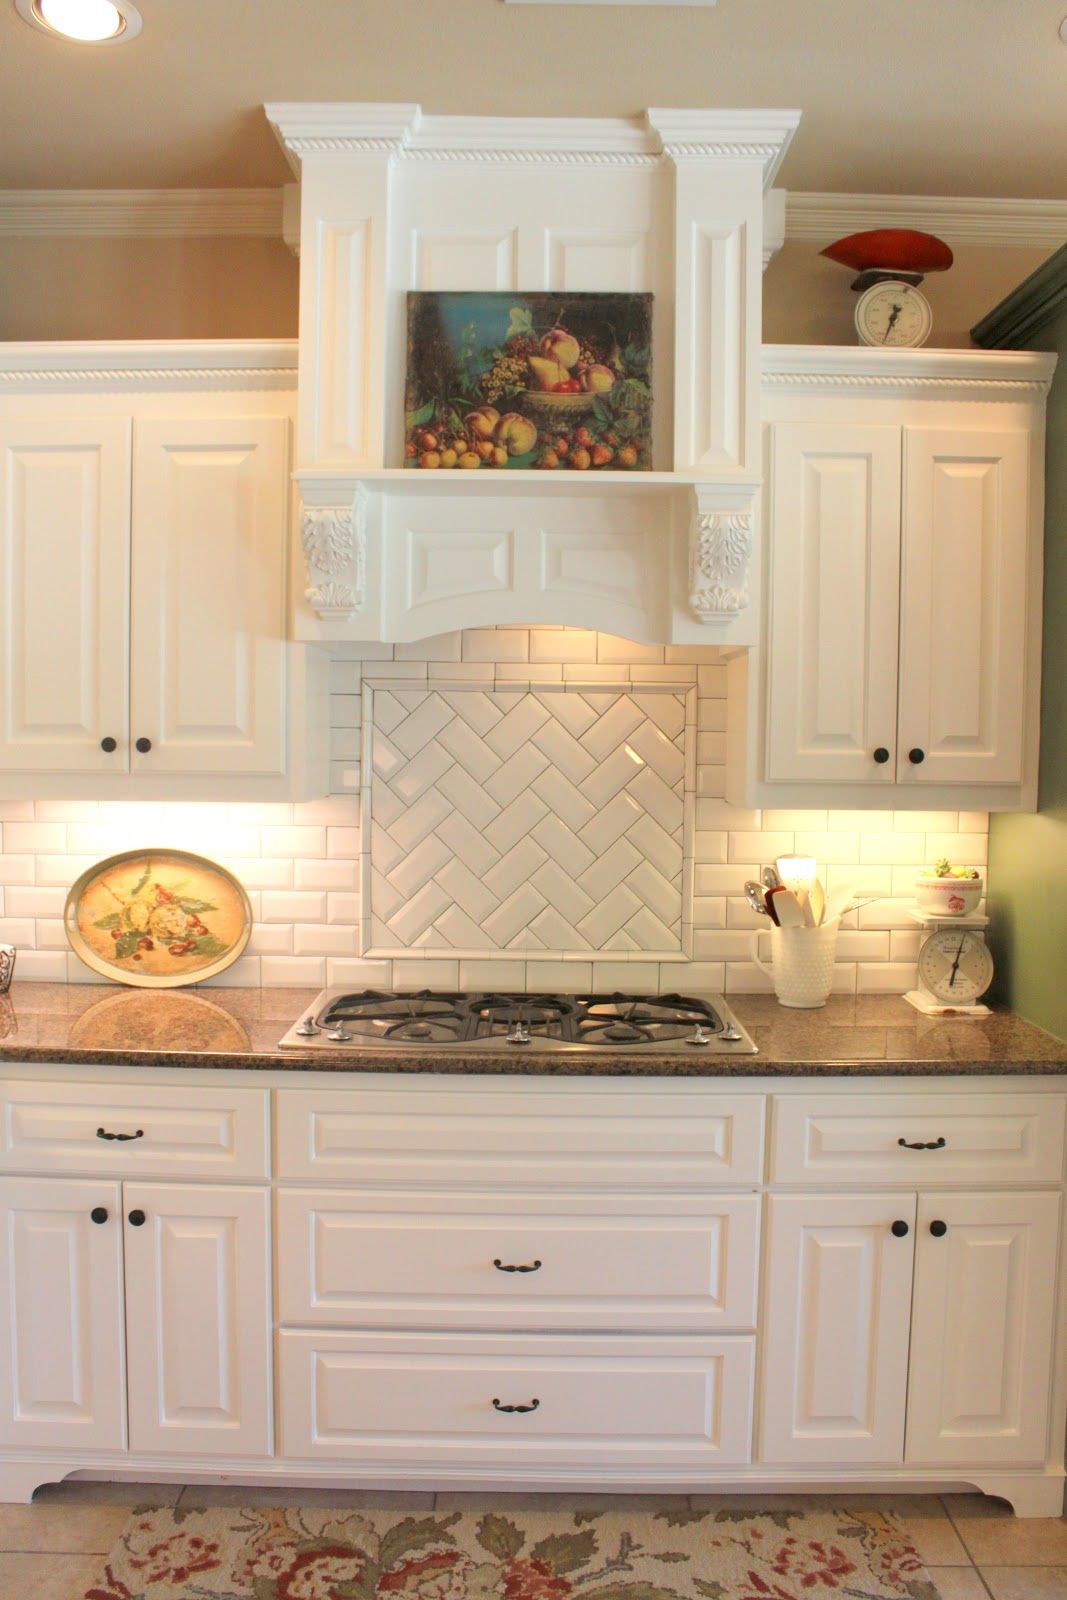 white tile backsplash kitchen distressed island subway or morrocan with cabinets